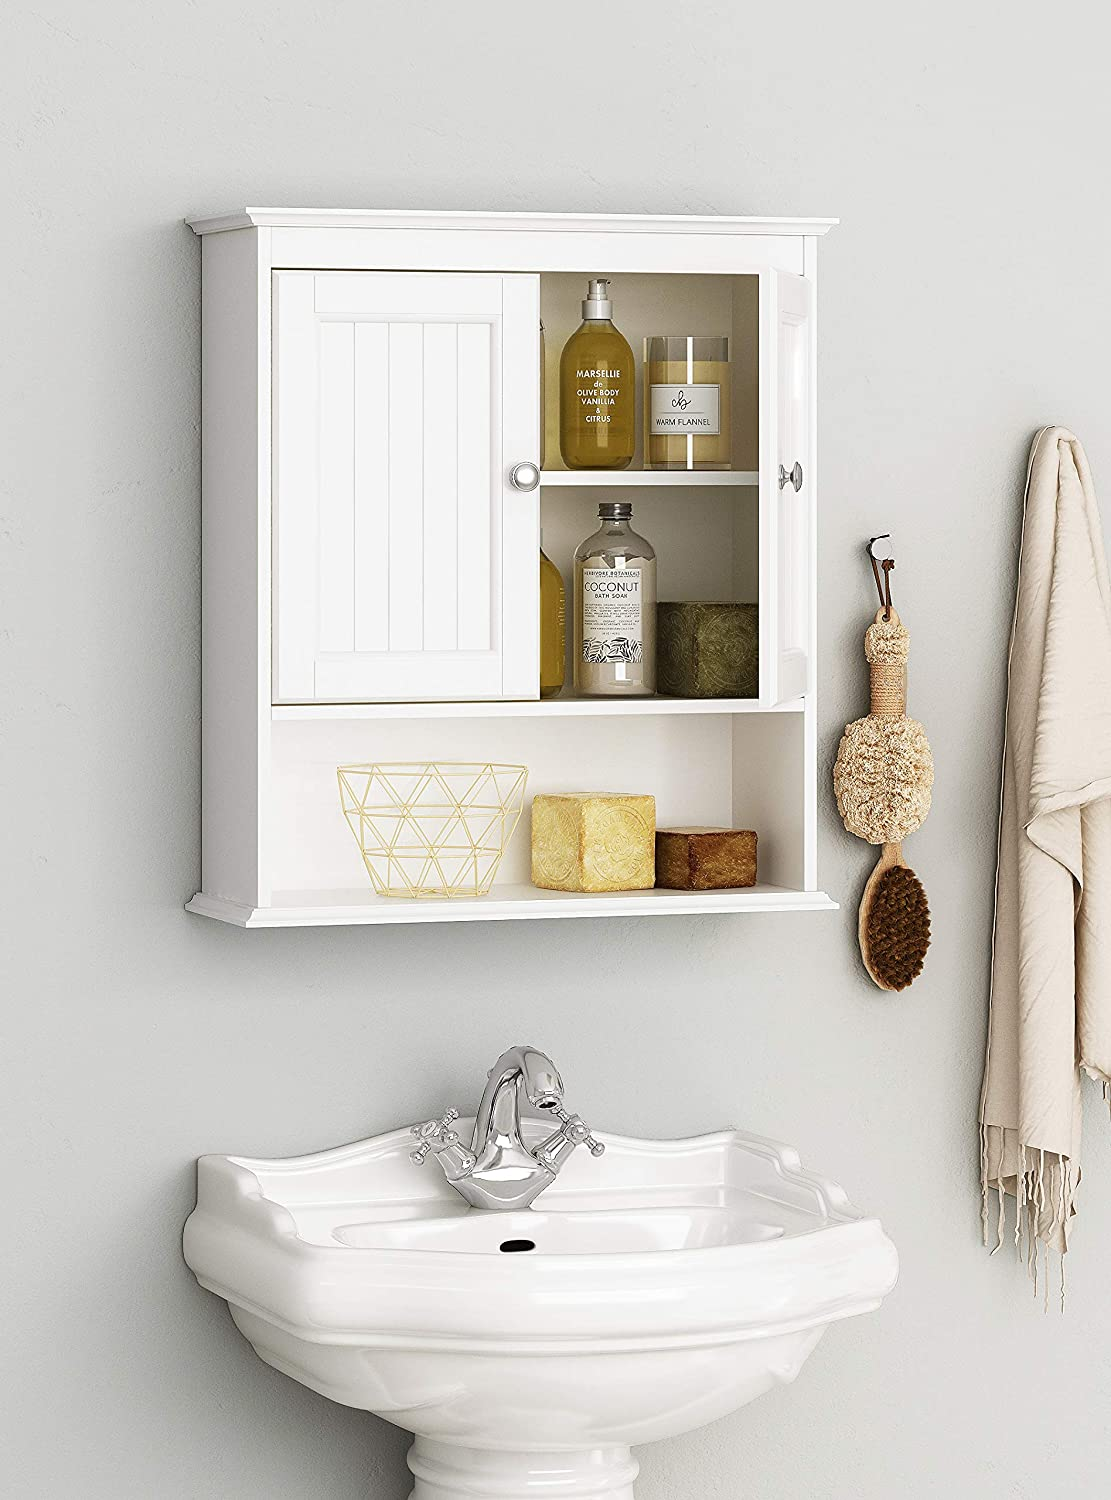 Spirich Home Bathroom Cabinet Wall Mounted with Doors, Wood Hanging Cabinet, Wall Cabinets with Doors and Shelves Over The Toilet, Bathroom Wall Cabinet White